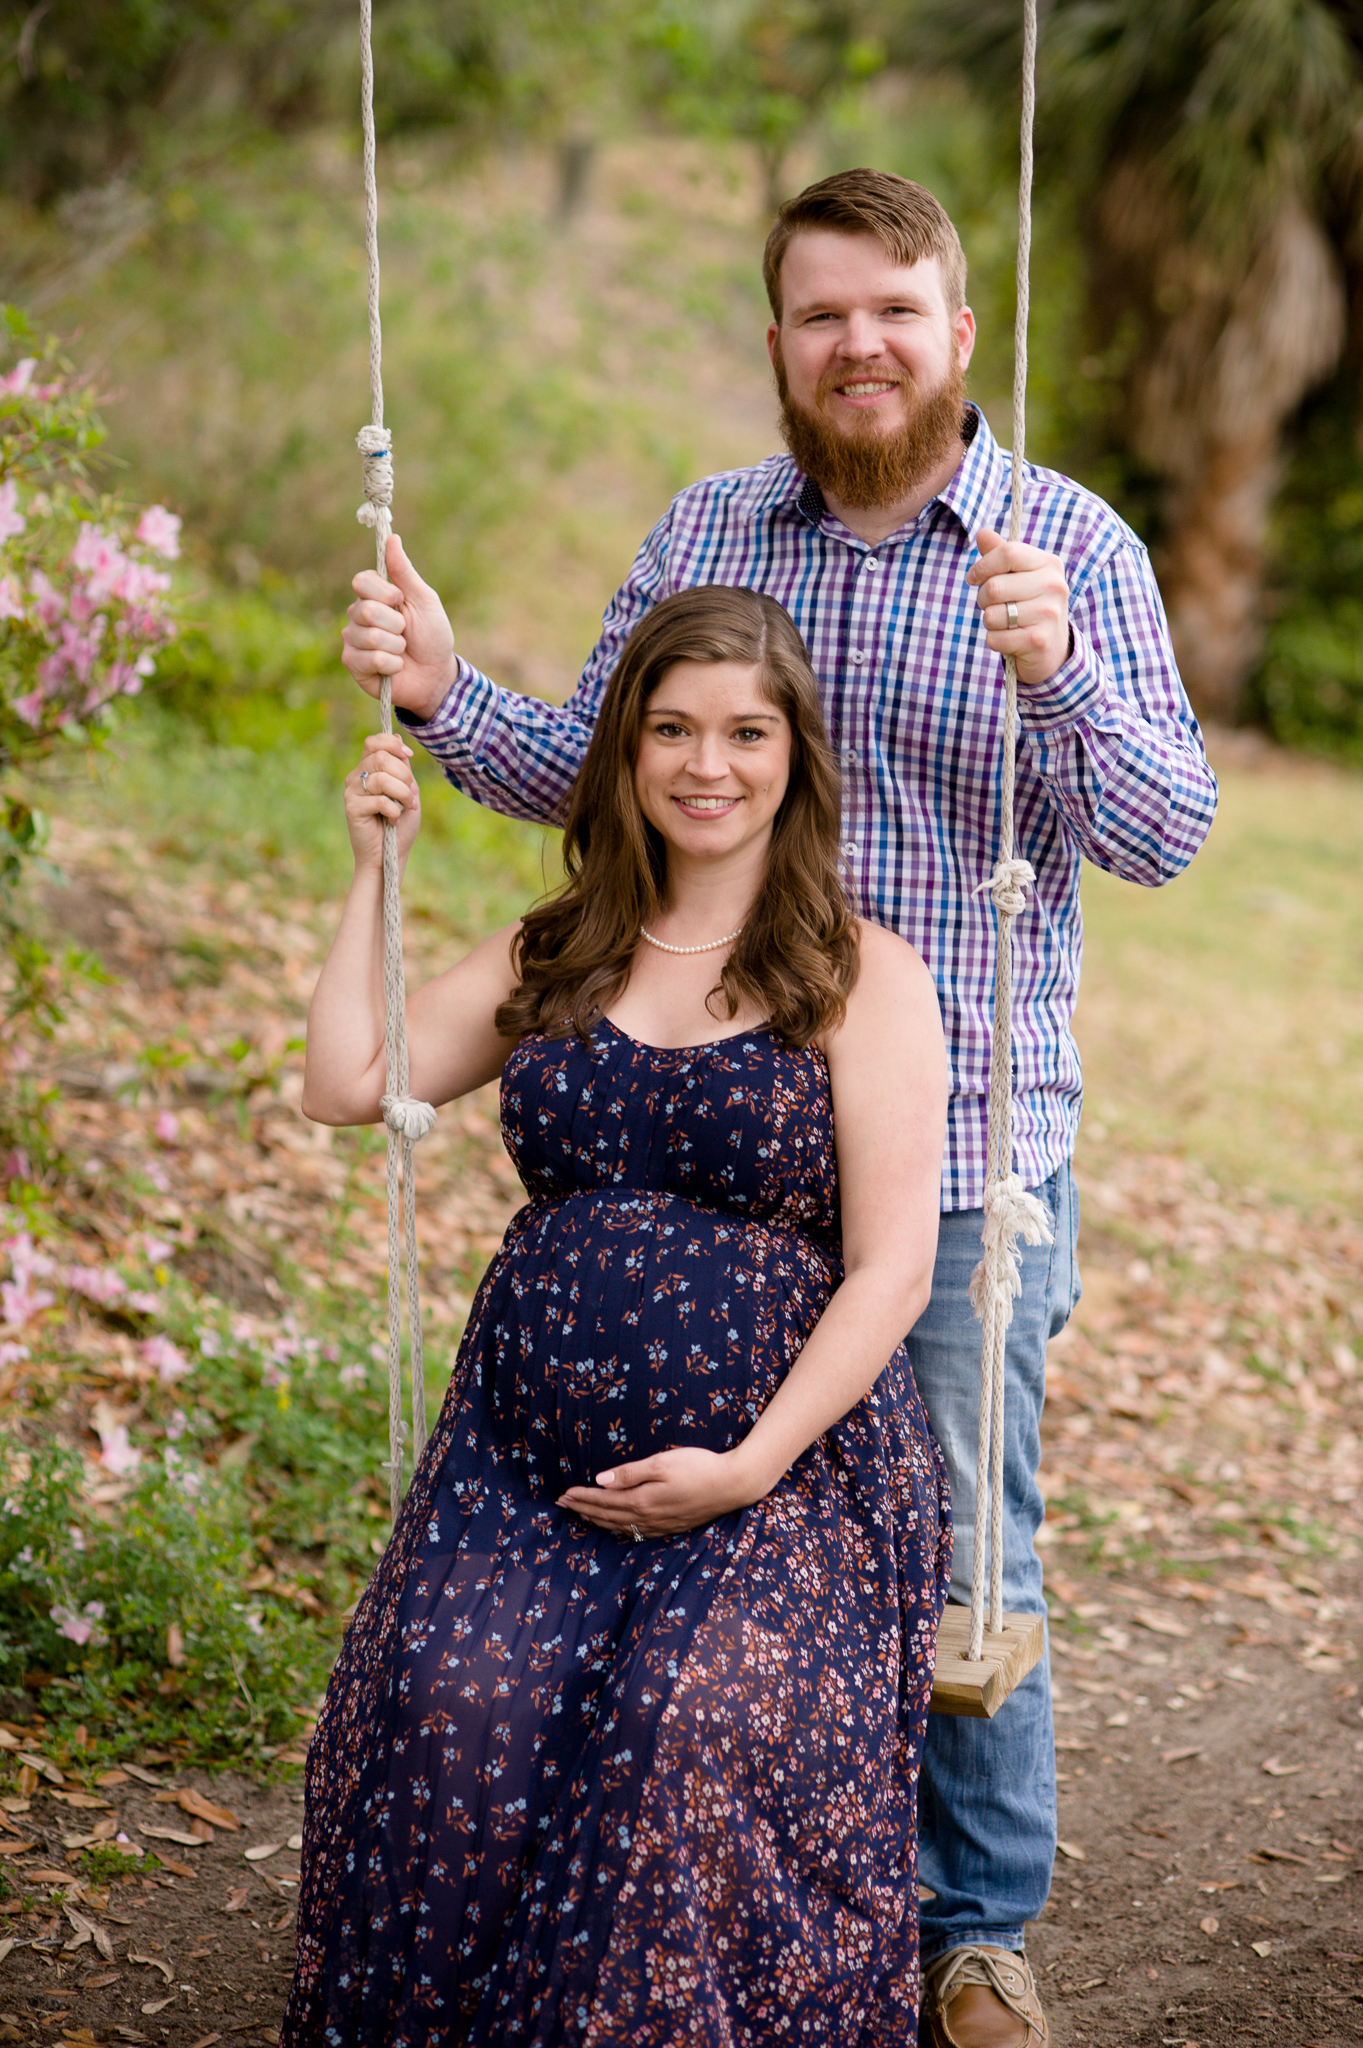 beaufort-south-carolina-maternity-portraits-2433.JPG